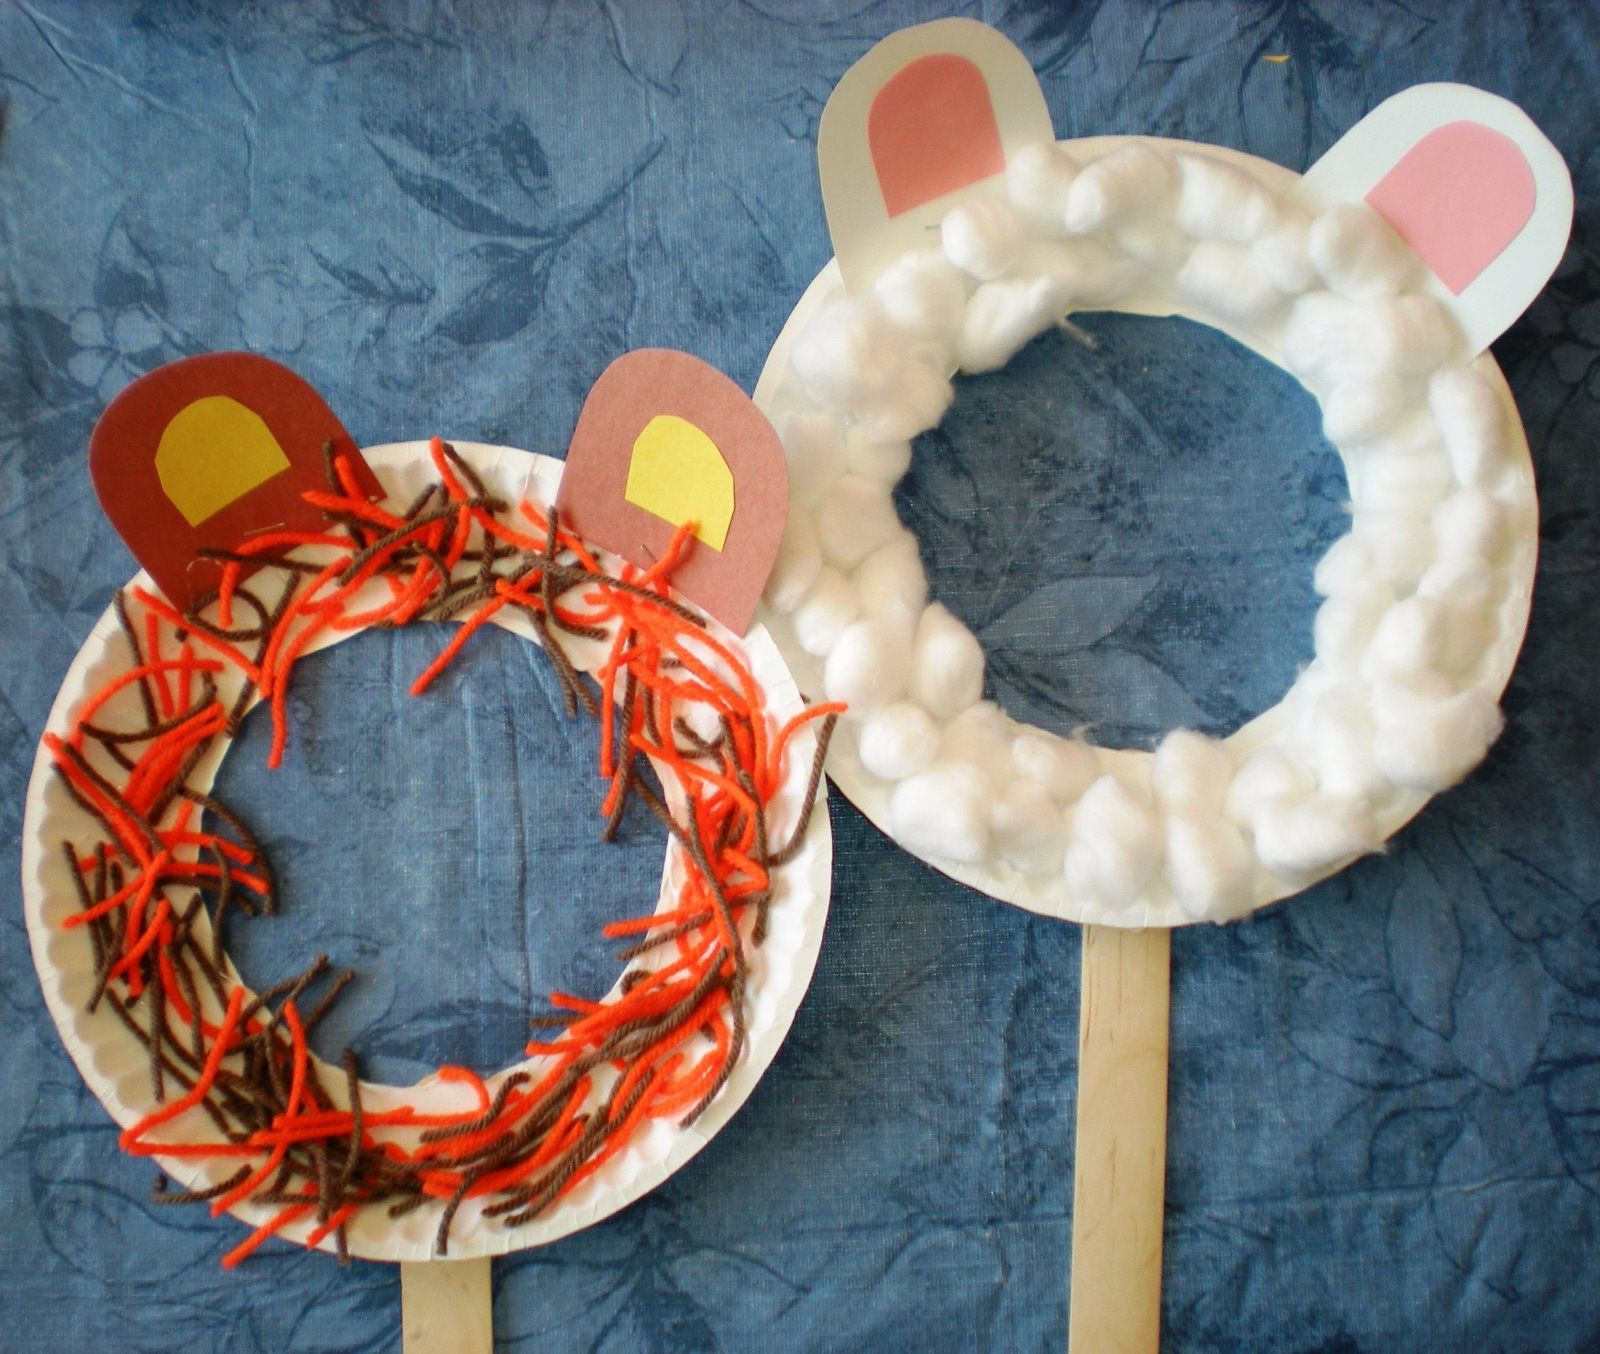 face masks; would be cute for kids party photo booth · Paper Plate ... & face masks; would be cute for kids party photo booth | Idea\u0027s for ...